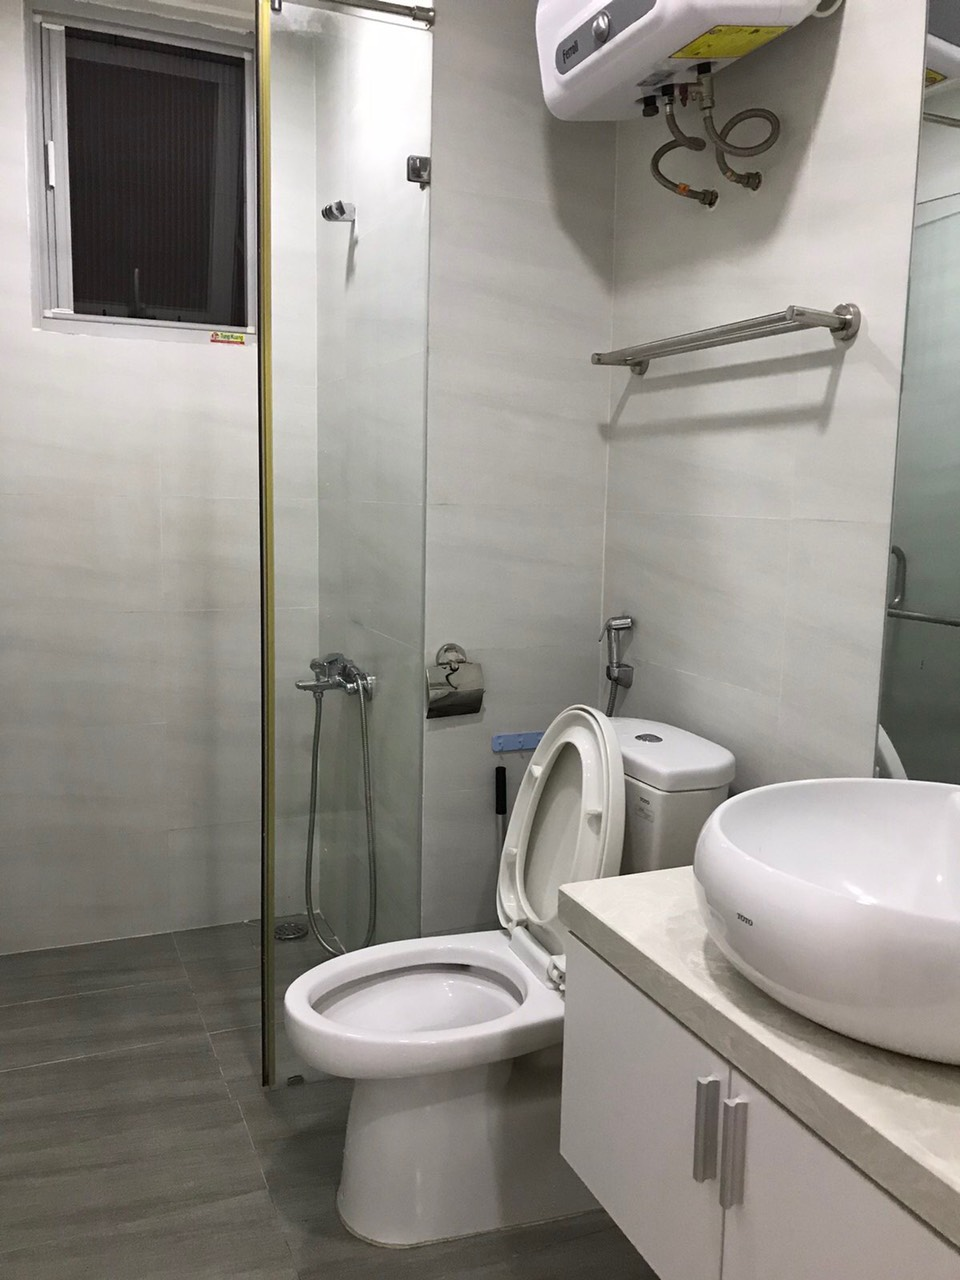 Scenic-valley-apartment-for rent-in-phu-my-hung-d-7-hcmc